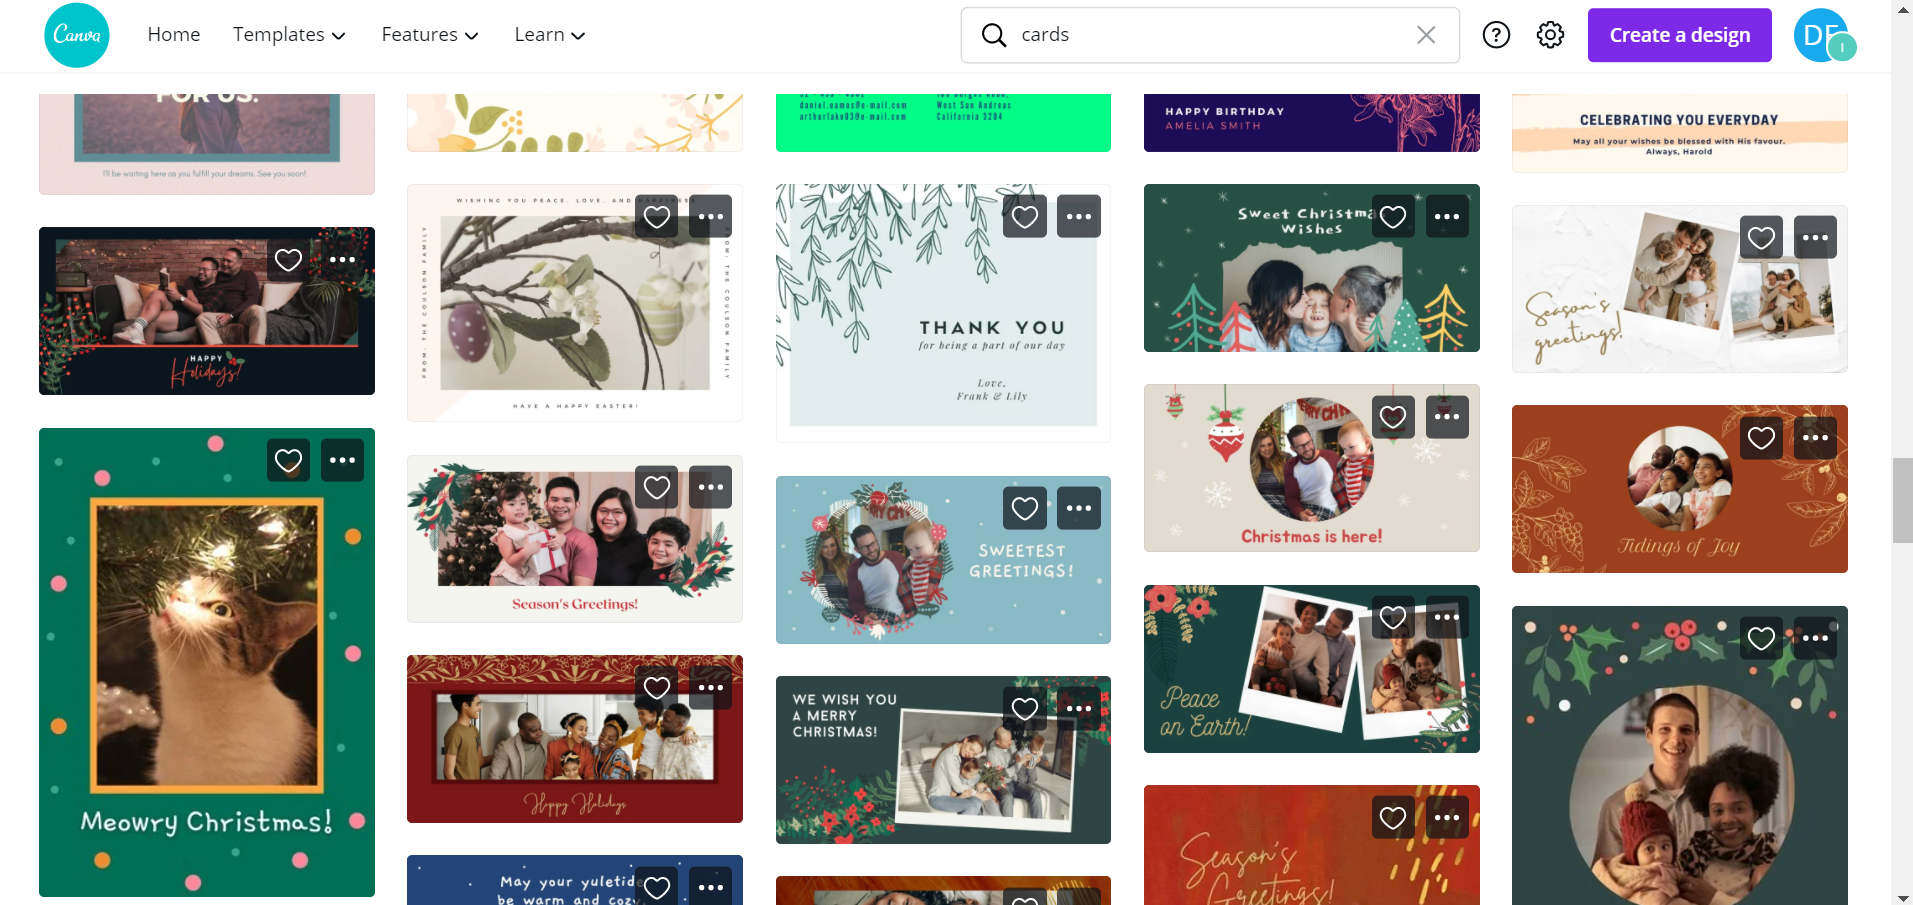 snapshot of canva card templates for virtual money gift ideas